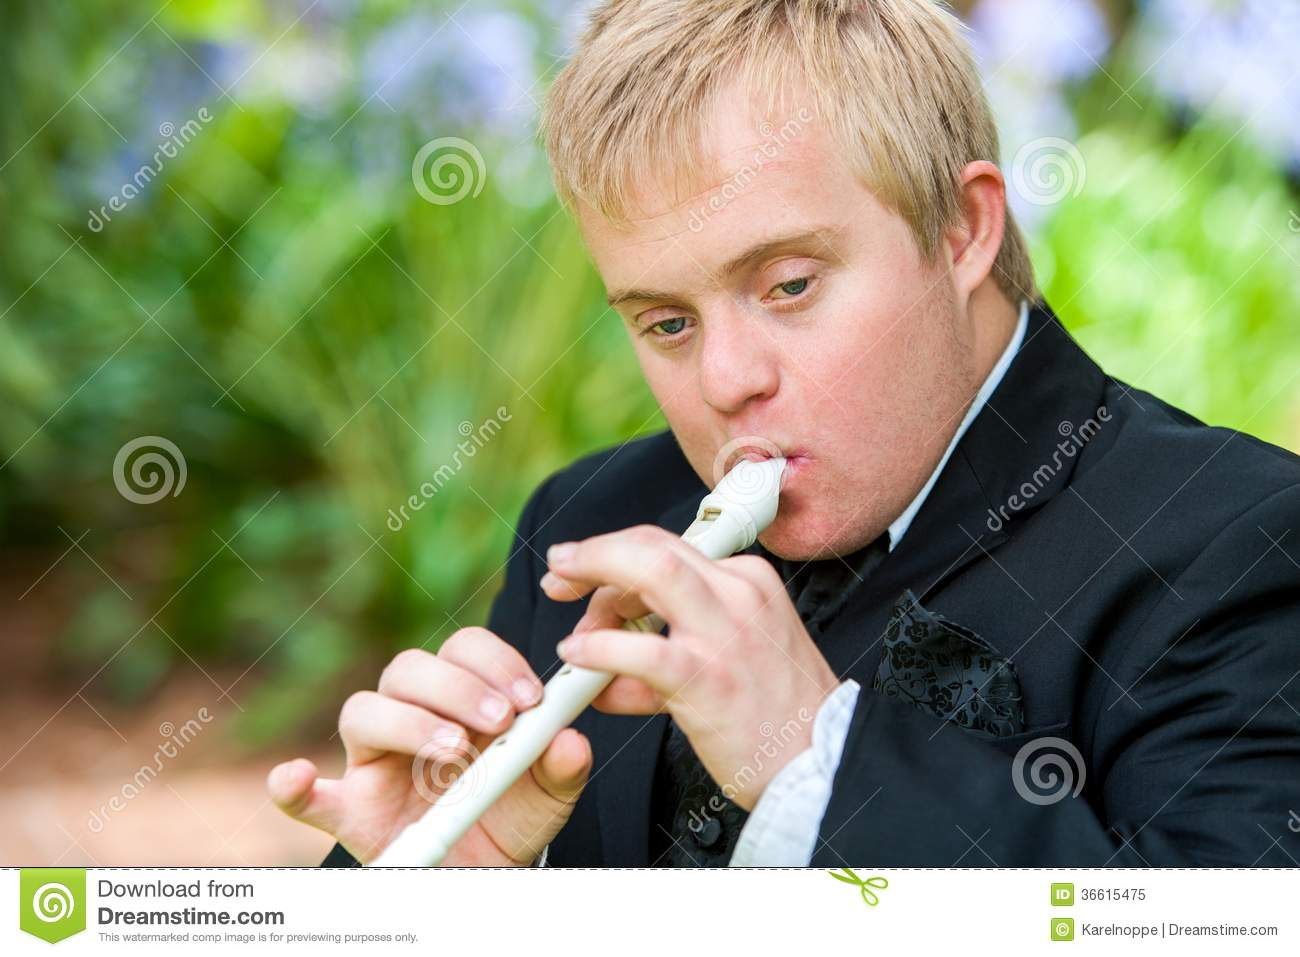 Handicapped Boy Playing Block Flute. Royalty Free Stock Photo - Image ...